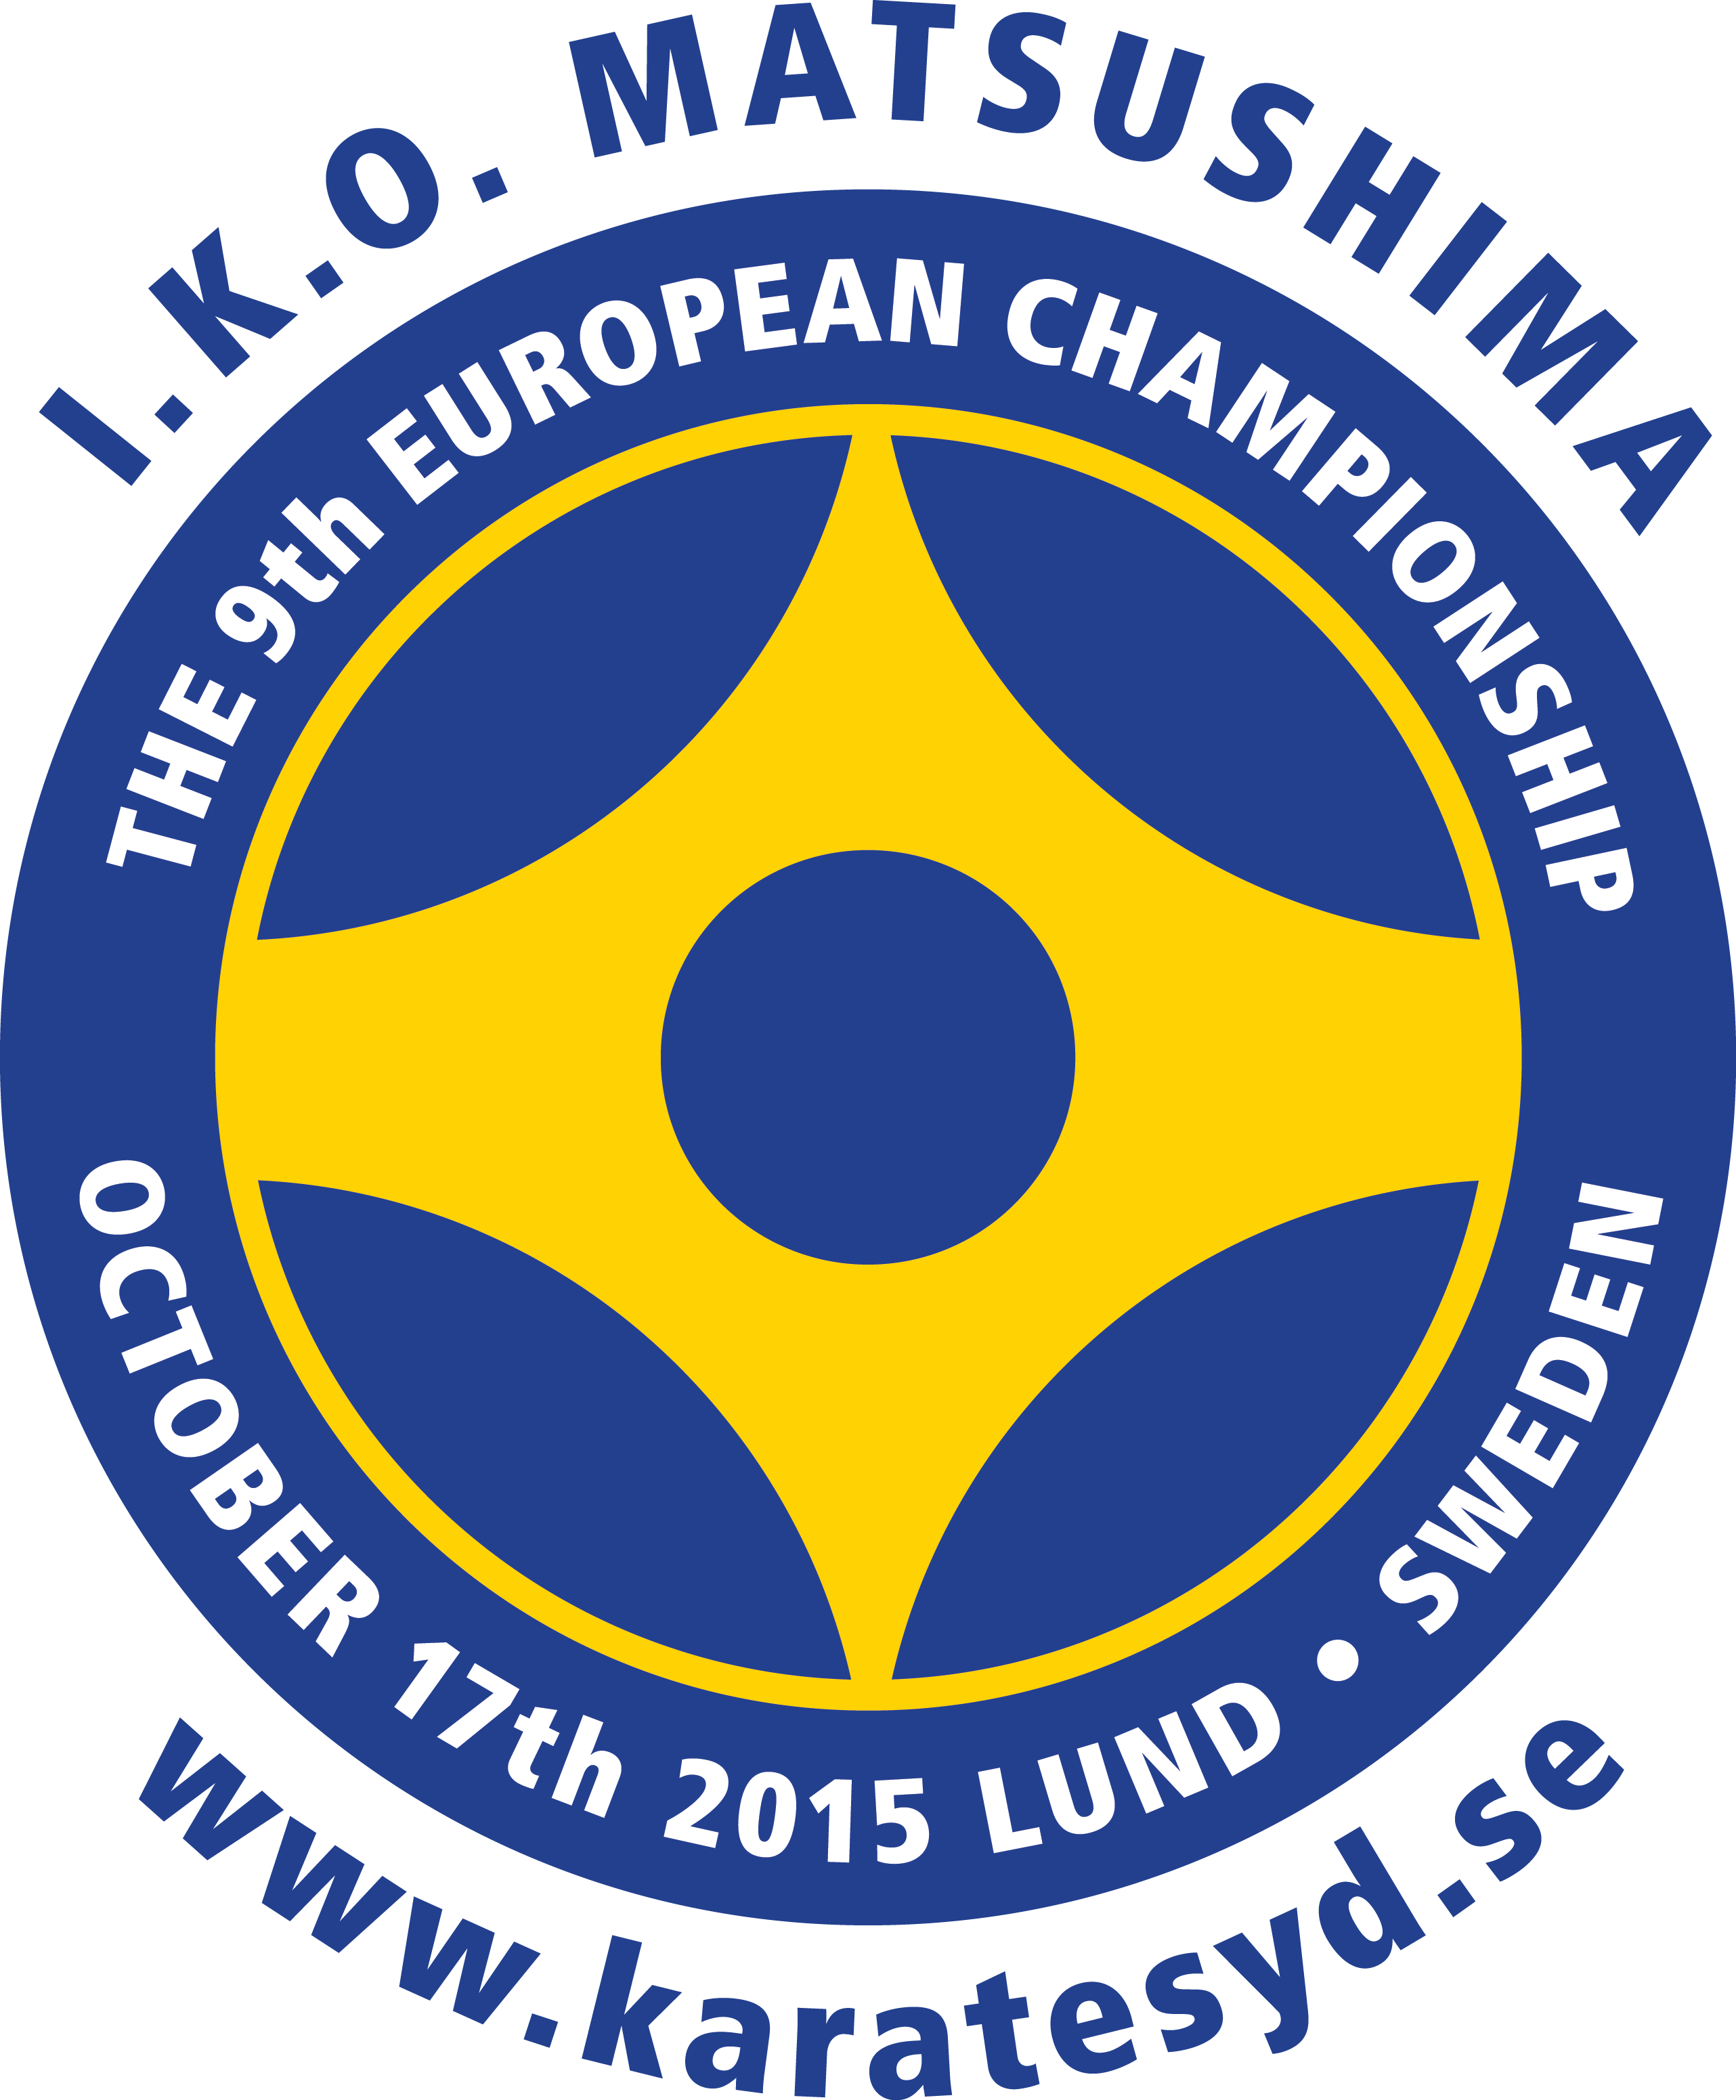 IKO-9th-EuroChamp-logo BLUE.png